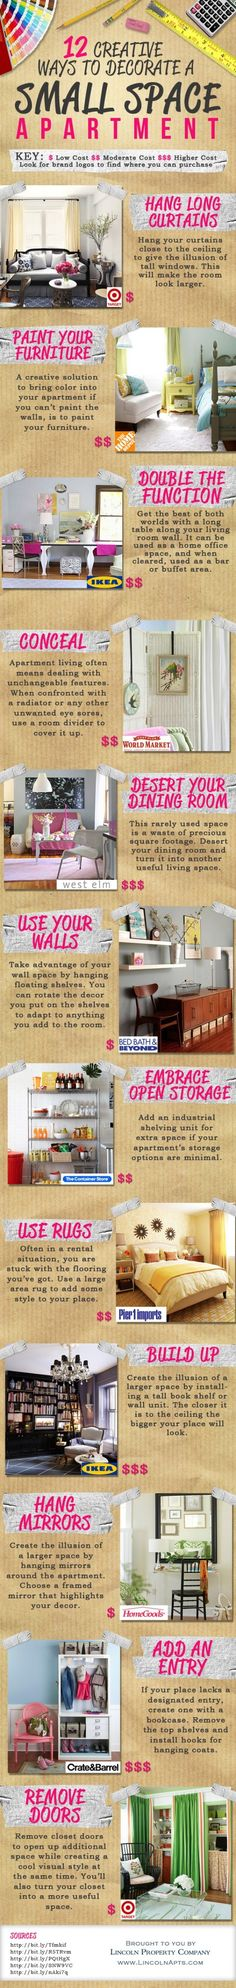 12 Tips For Small Spaces